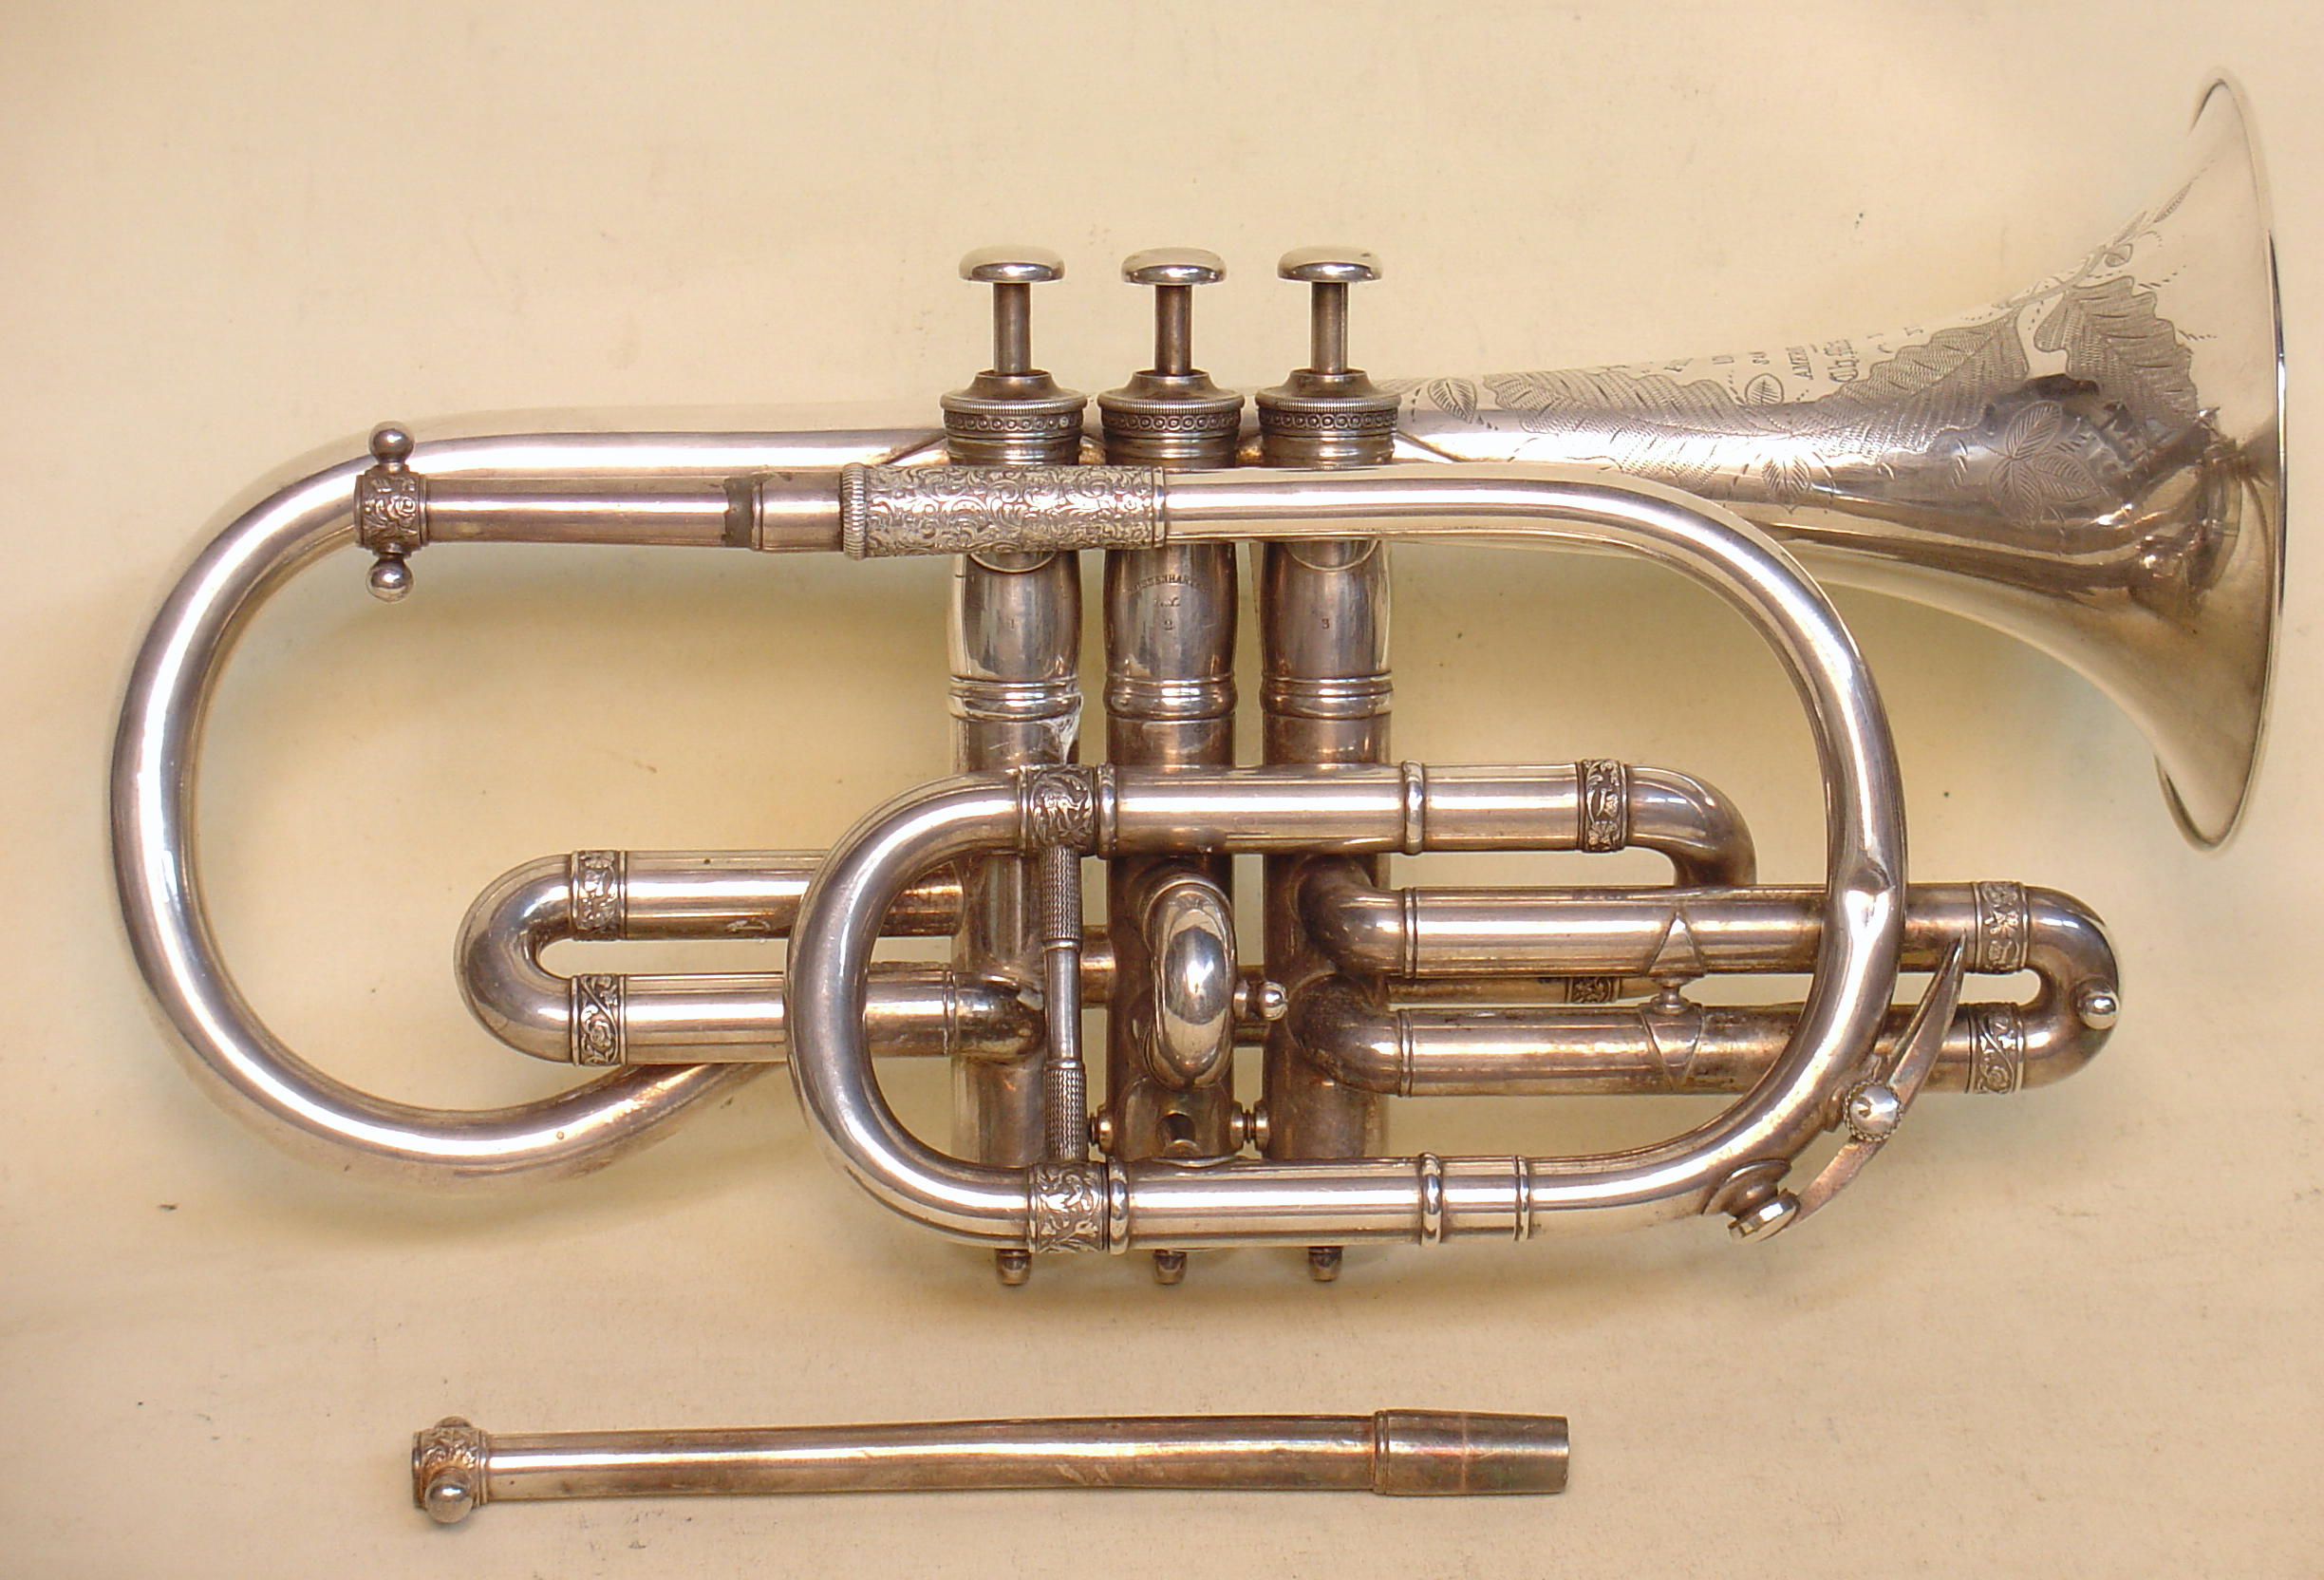 Now here is a vintage cornet for you | Page 2 | Trumpet ...